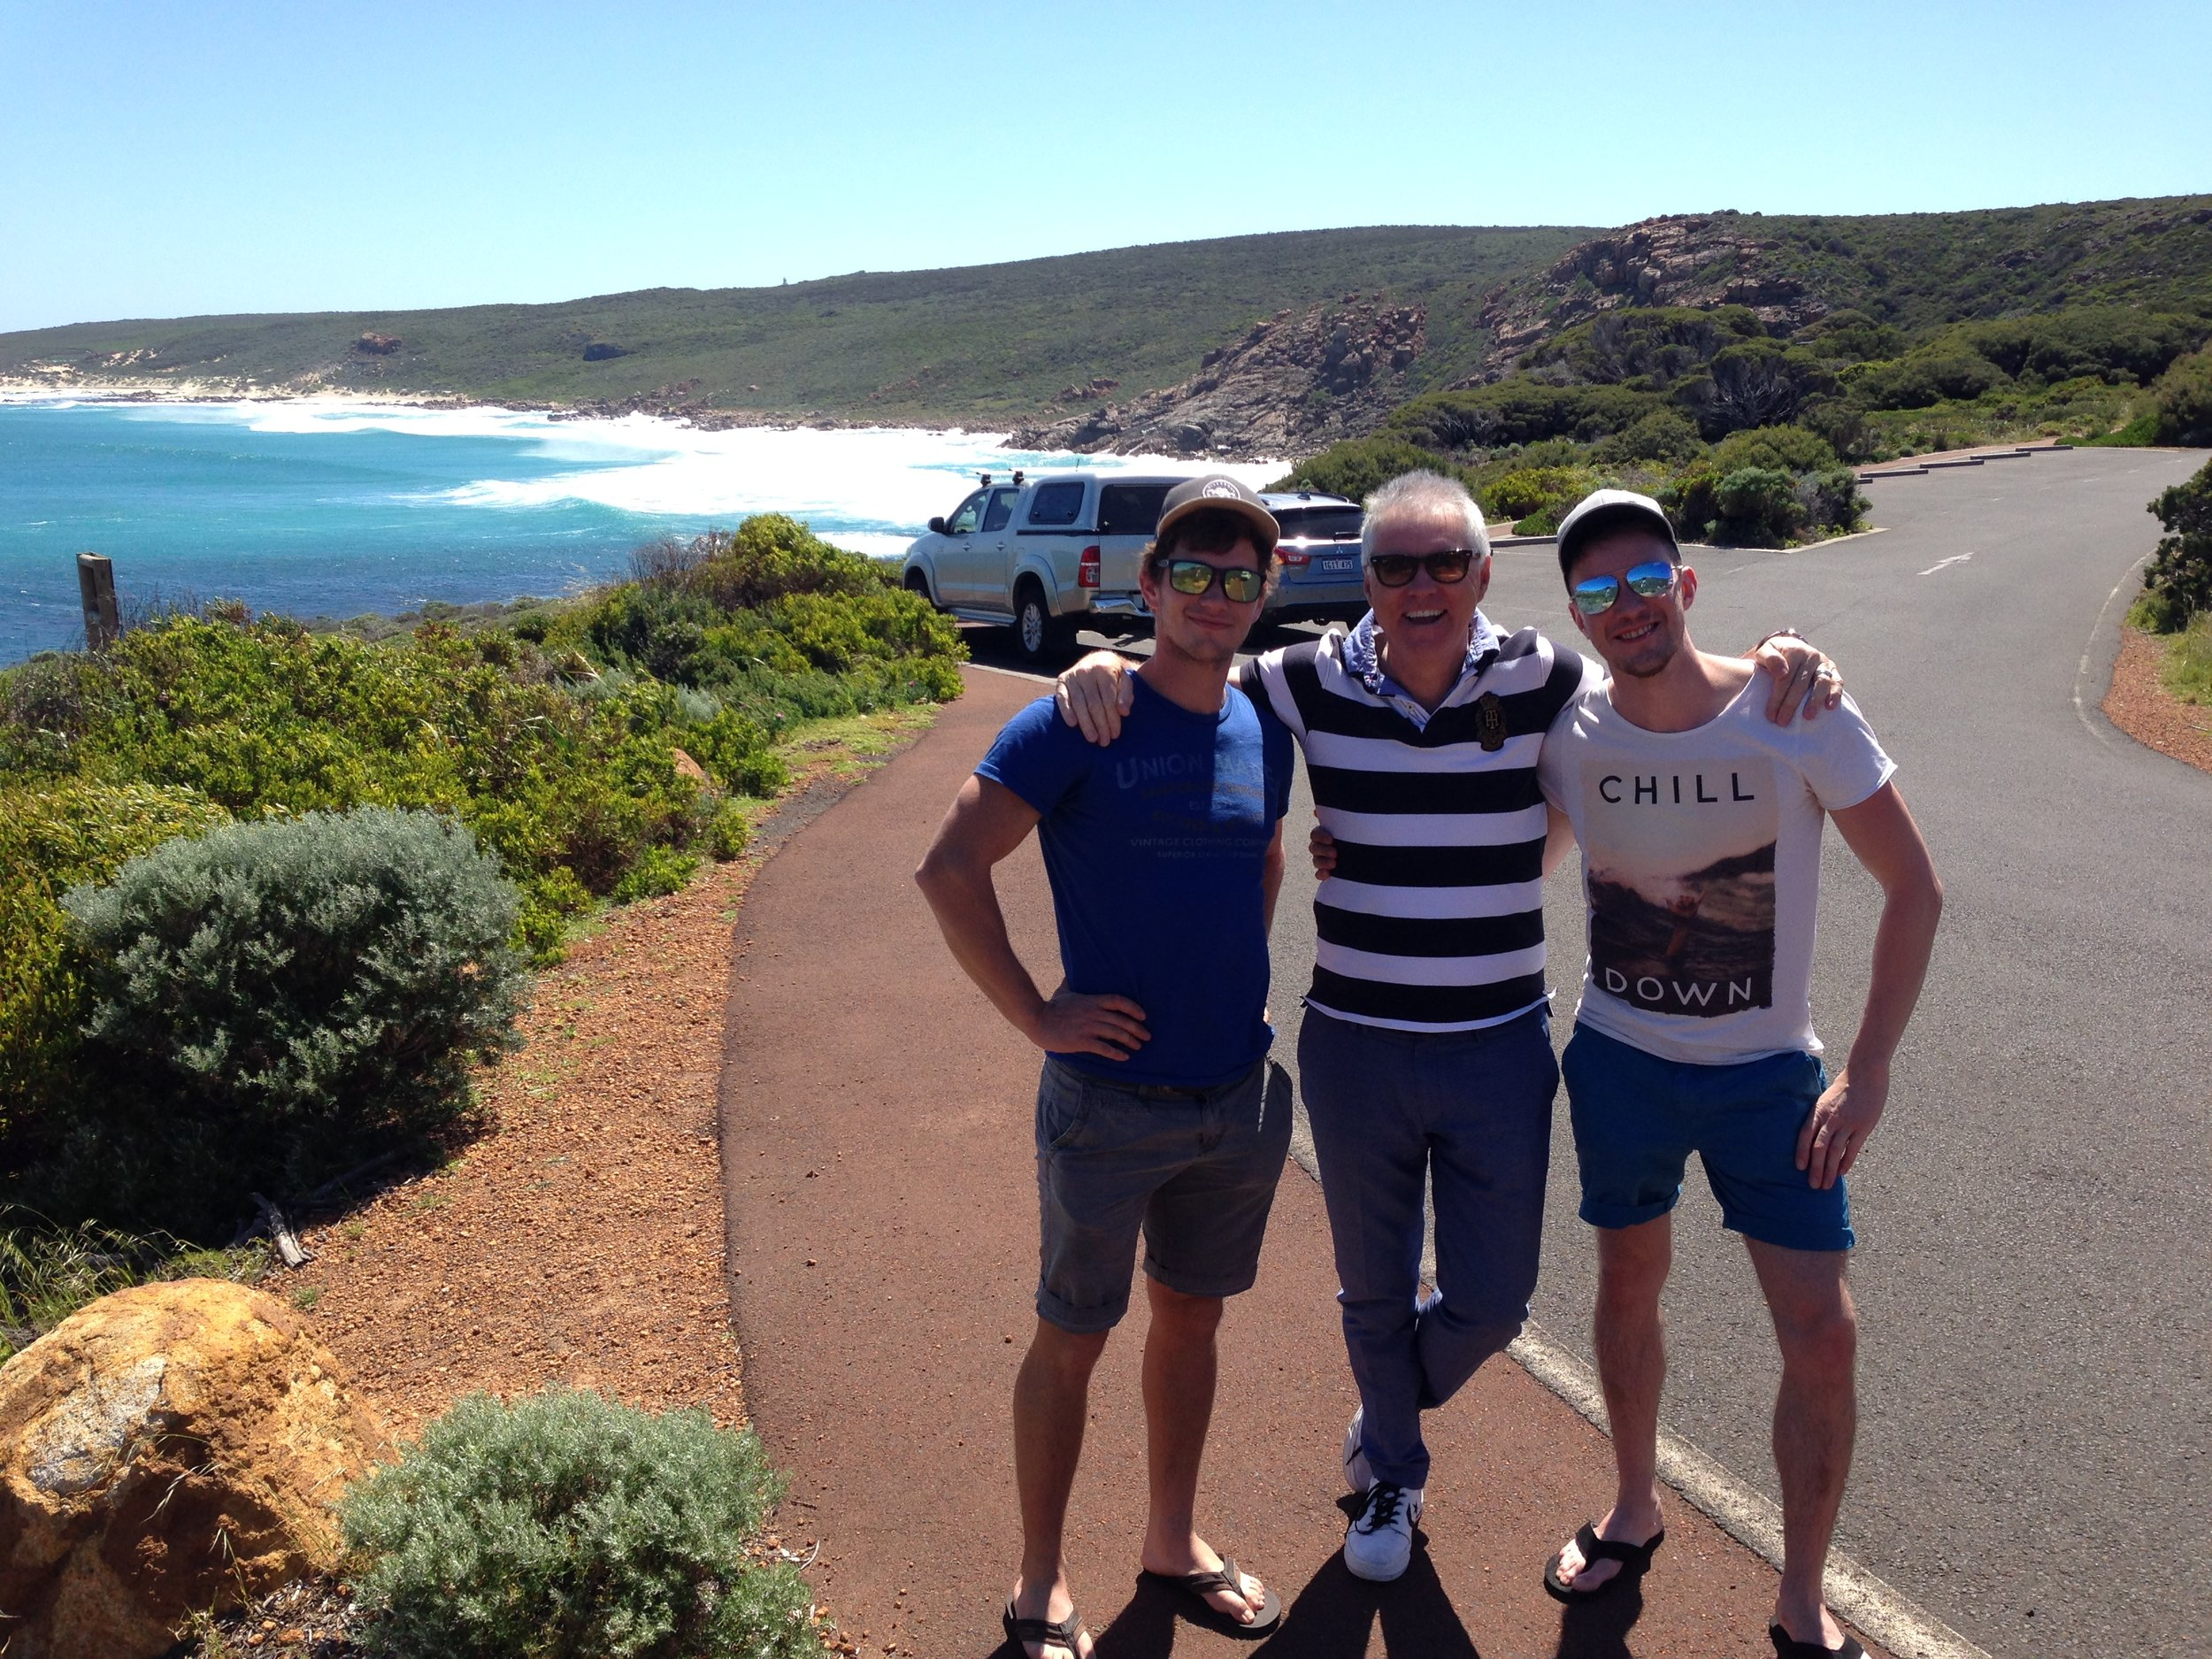 PB & the 2 young lads at SUGARLOAF  SUMMER DAY.JPG